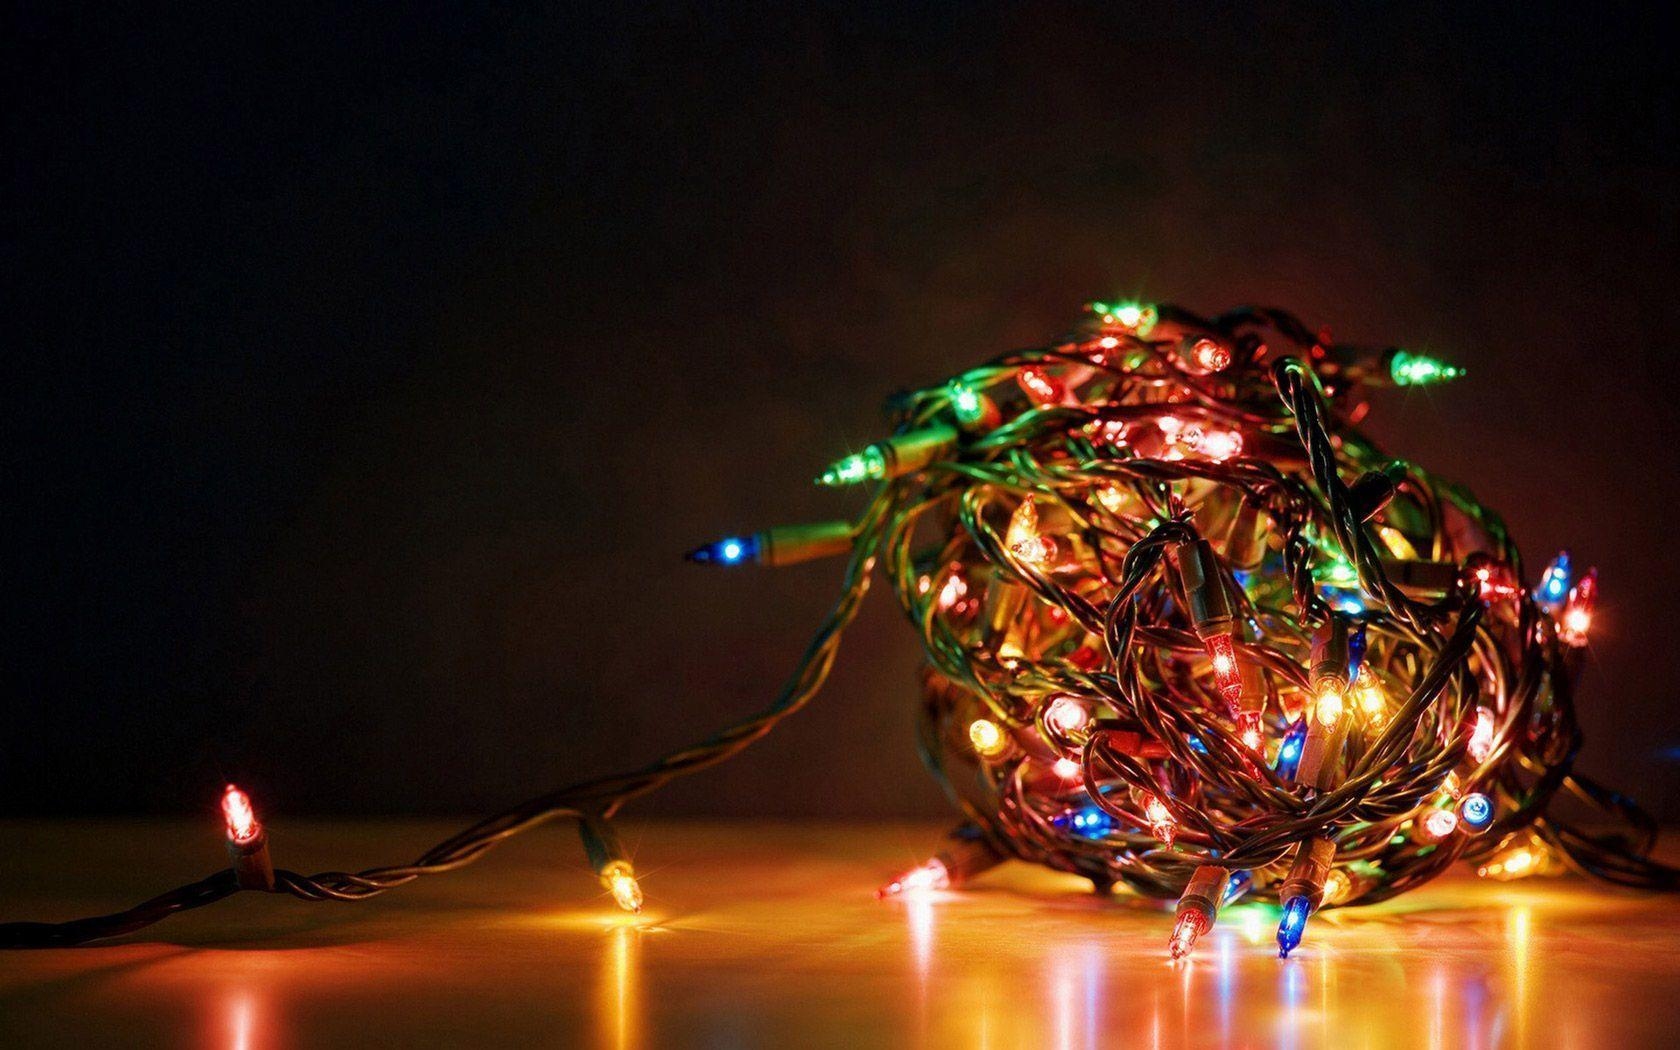 1680x1050 Christmas Lights Desktop Wallpapers